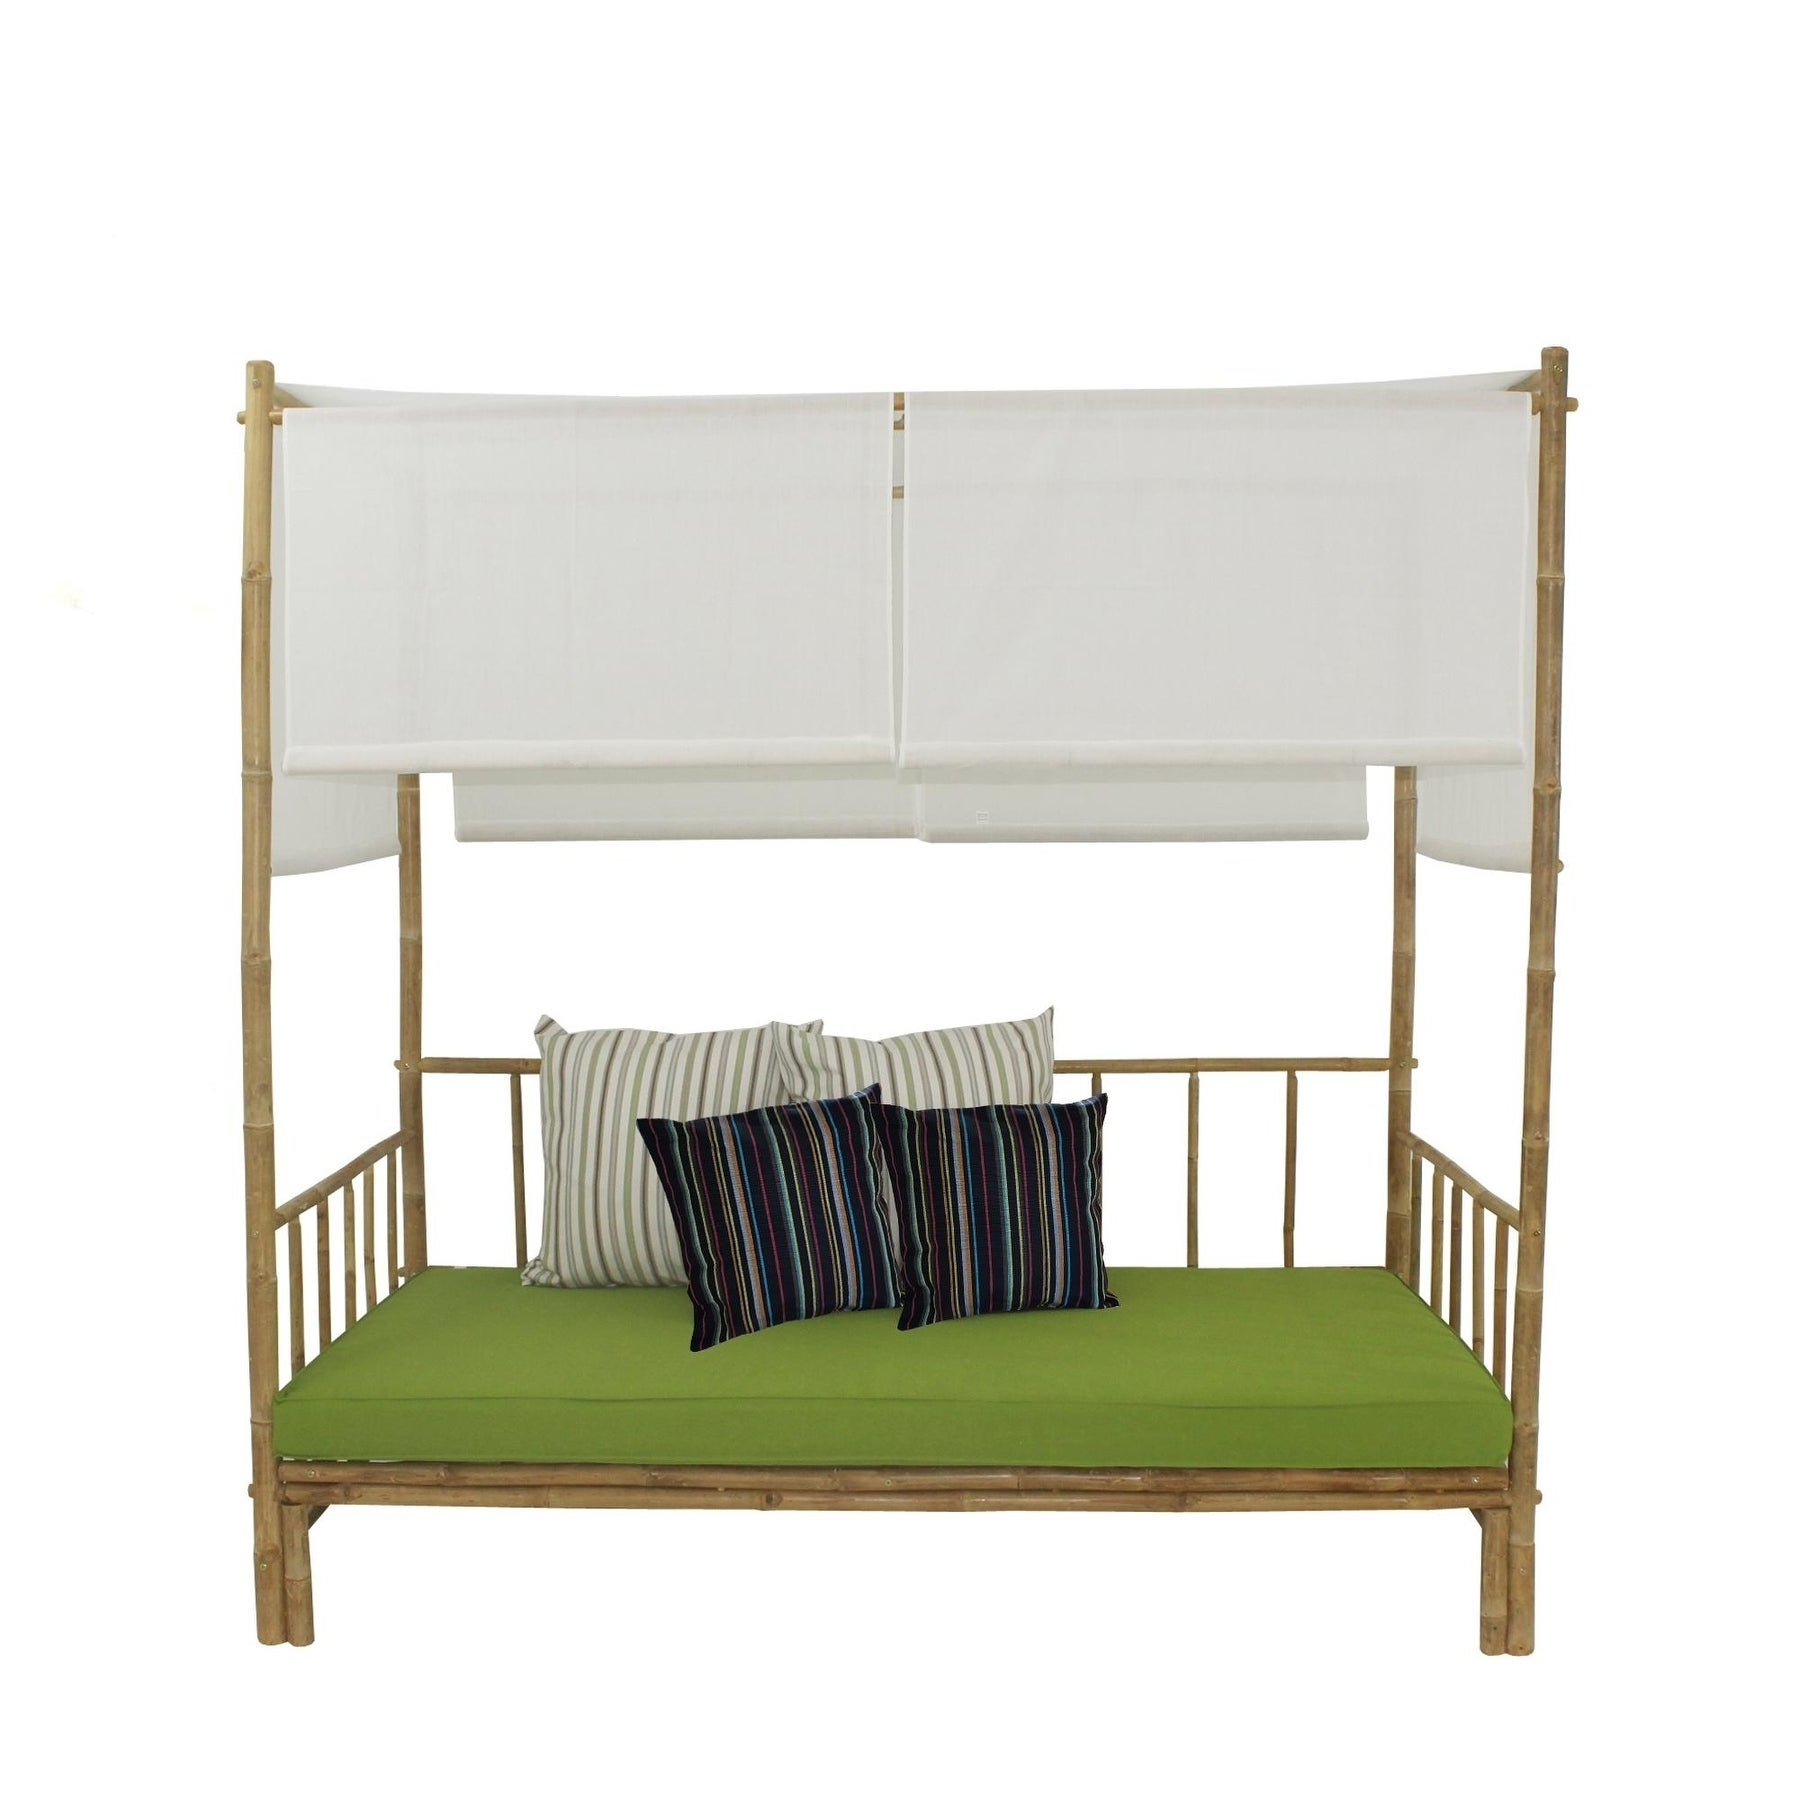 Bamboo Daybed With Canopy Throughout Most Popular Bamboo Daybeds With Canopy (View 5 of 25)